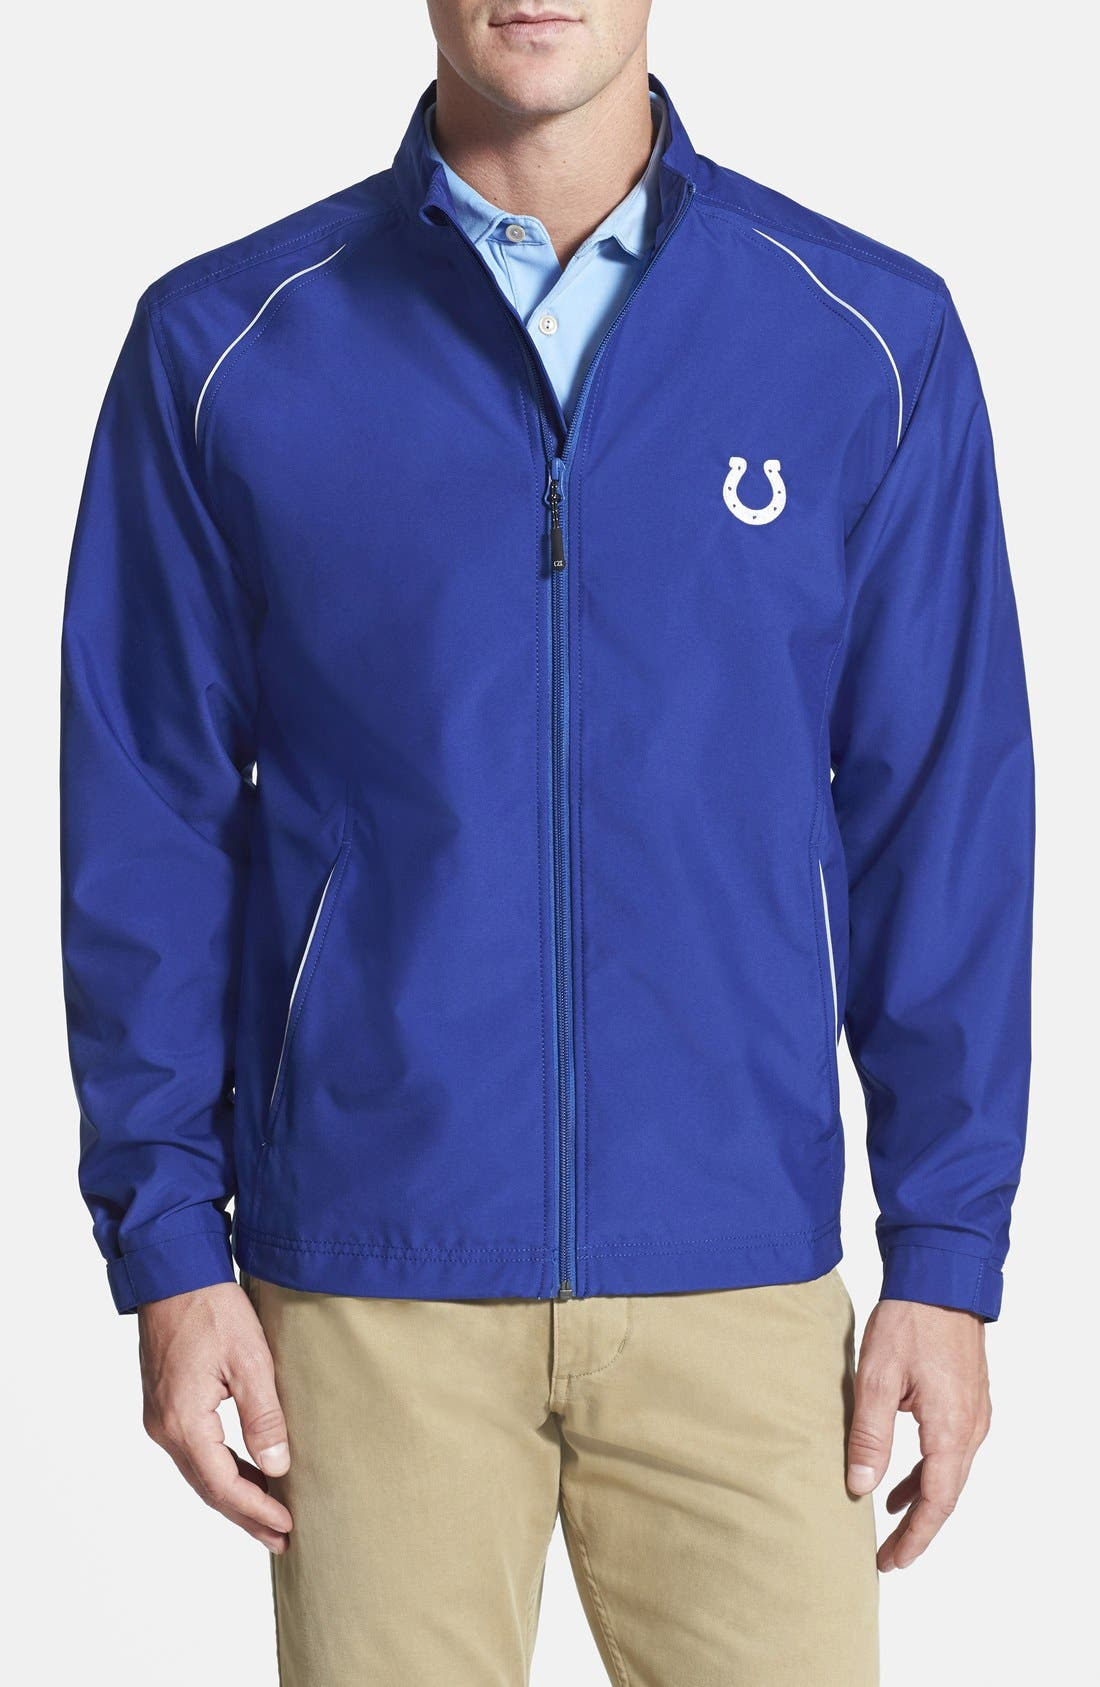 Main Image - Cutter & Buck Indianapolis Colts - Beacon WeatherTec Wind & Water Resistant Jacket